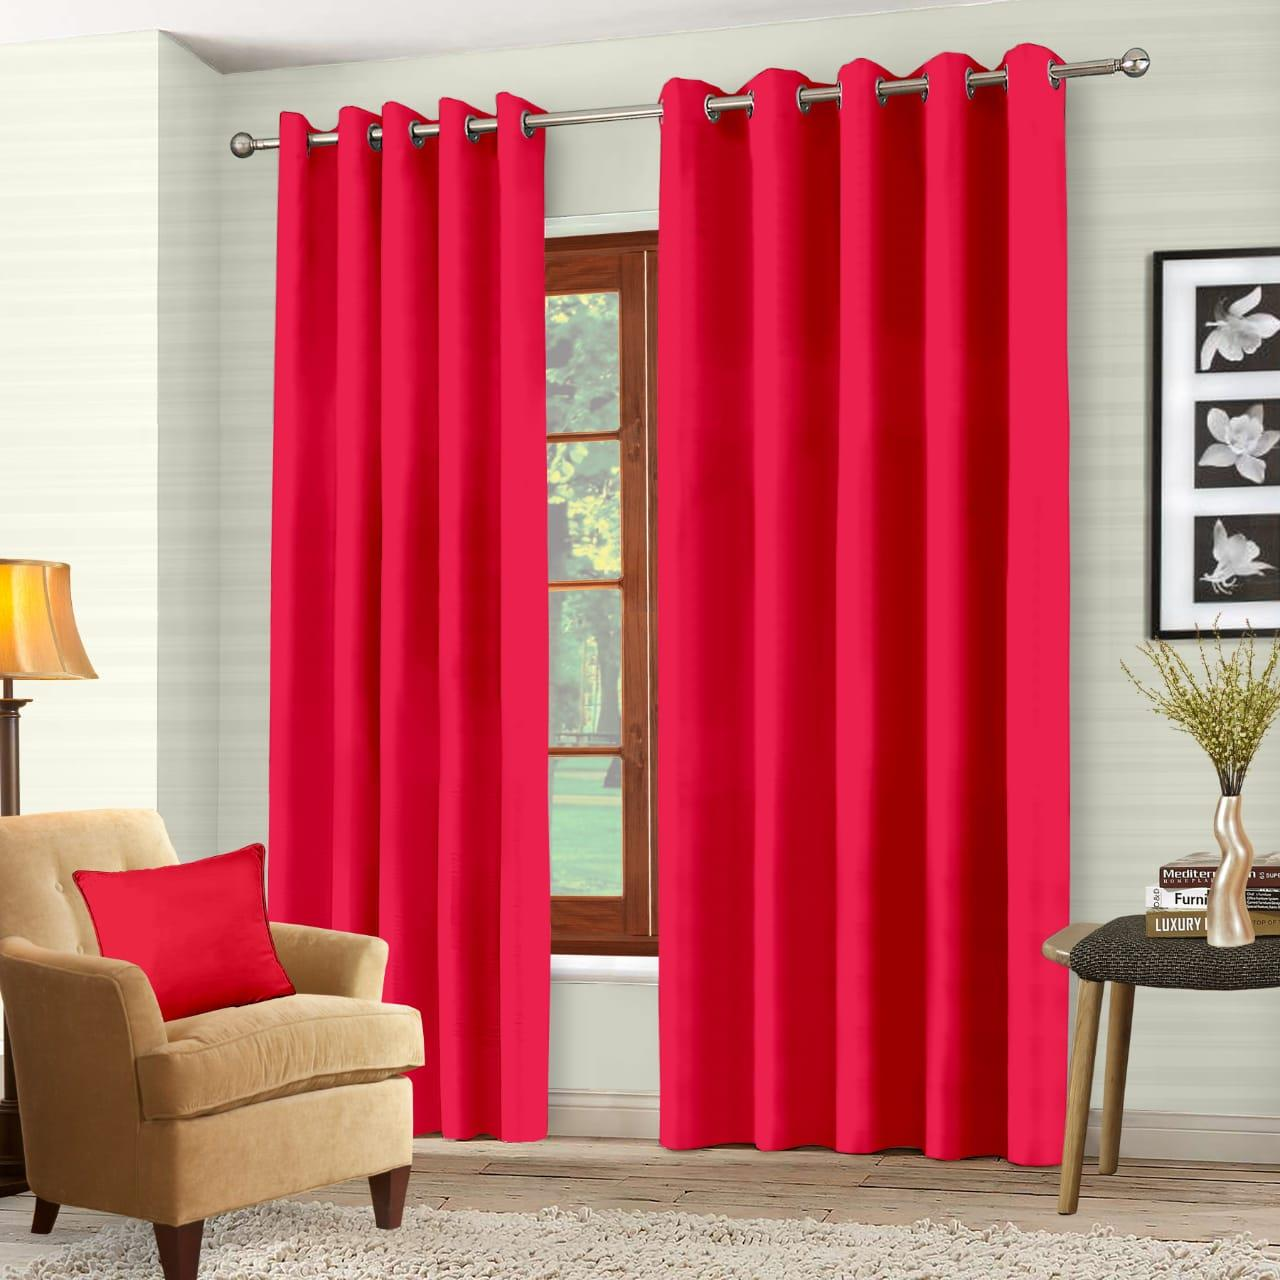 Luxury-Thermal-Blackout-Eyelet-Ring-Top-Curtains-Pair-with-tie-backs thumbnail 41